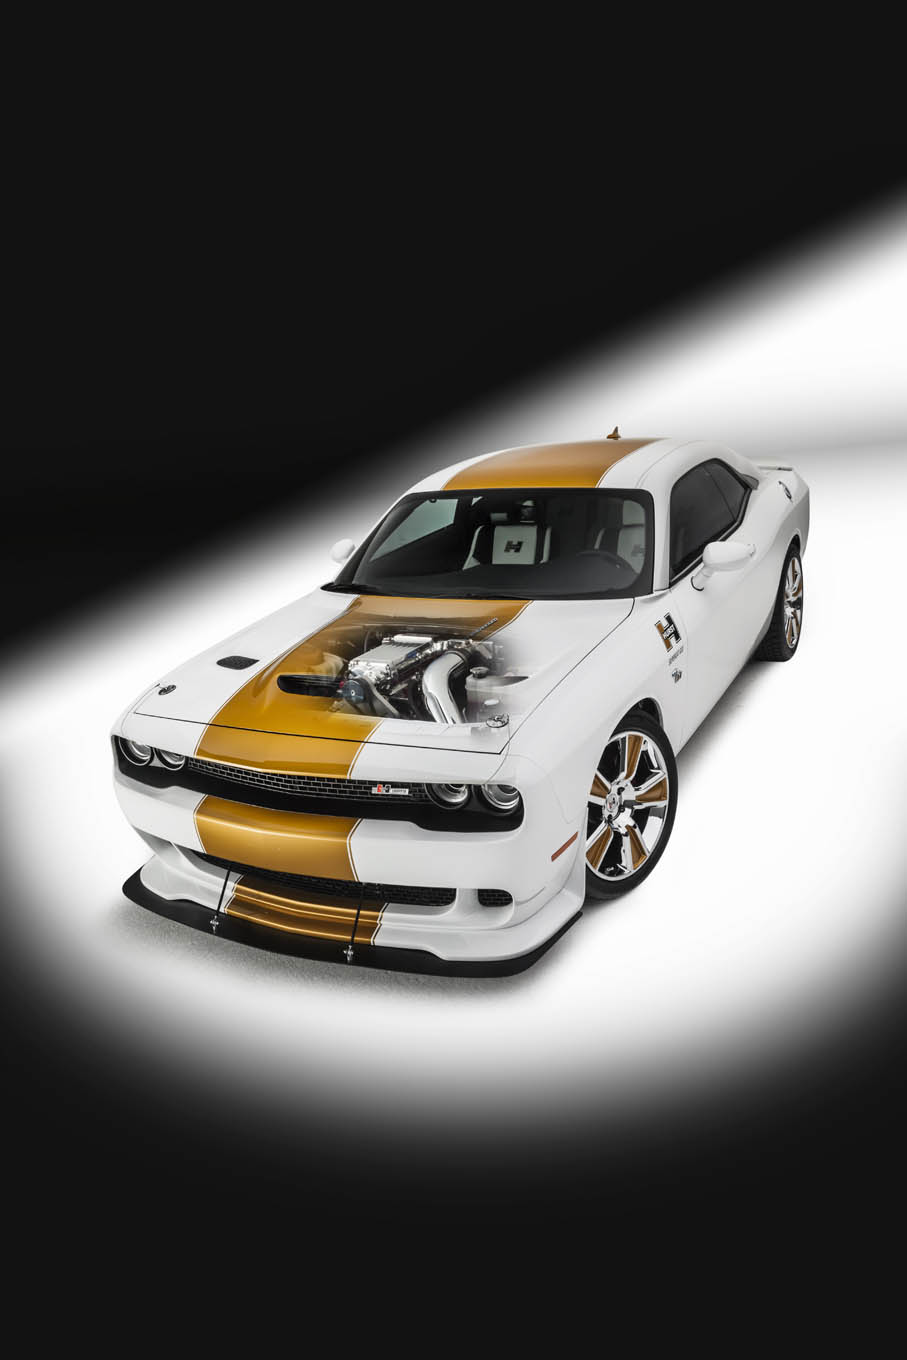 There are a variety of option levels for the Mr. Norm GSS Hurst Edition, but this particular car (including the new 2016 Scat Pack six-speed) runs around $70K. Larry Weiner of Mr. Norm's Performance says they can convert any 392-equipped (2011-up) SRT8 or Scat Pack Challenger to GSS Supercat specs. Hurst conversions on new or pre-owned cars are welcome.